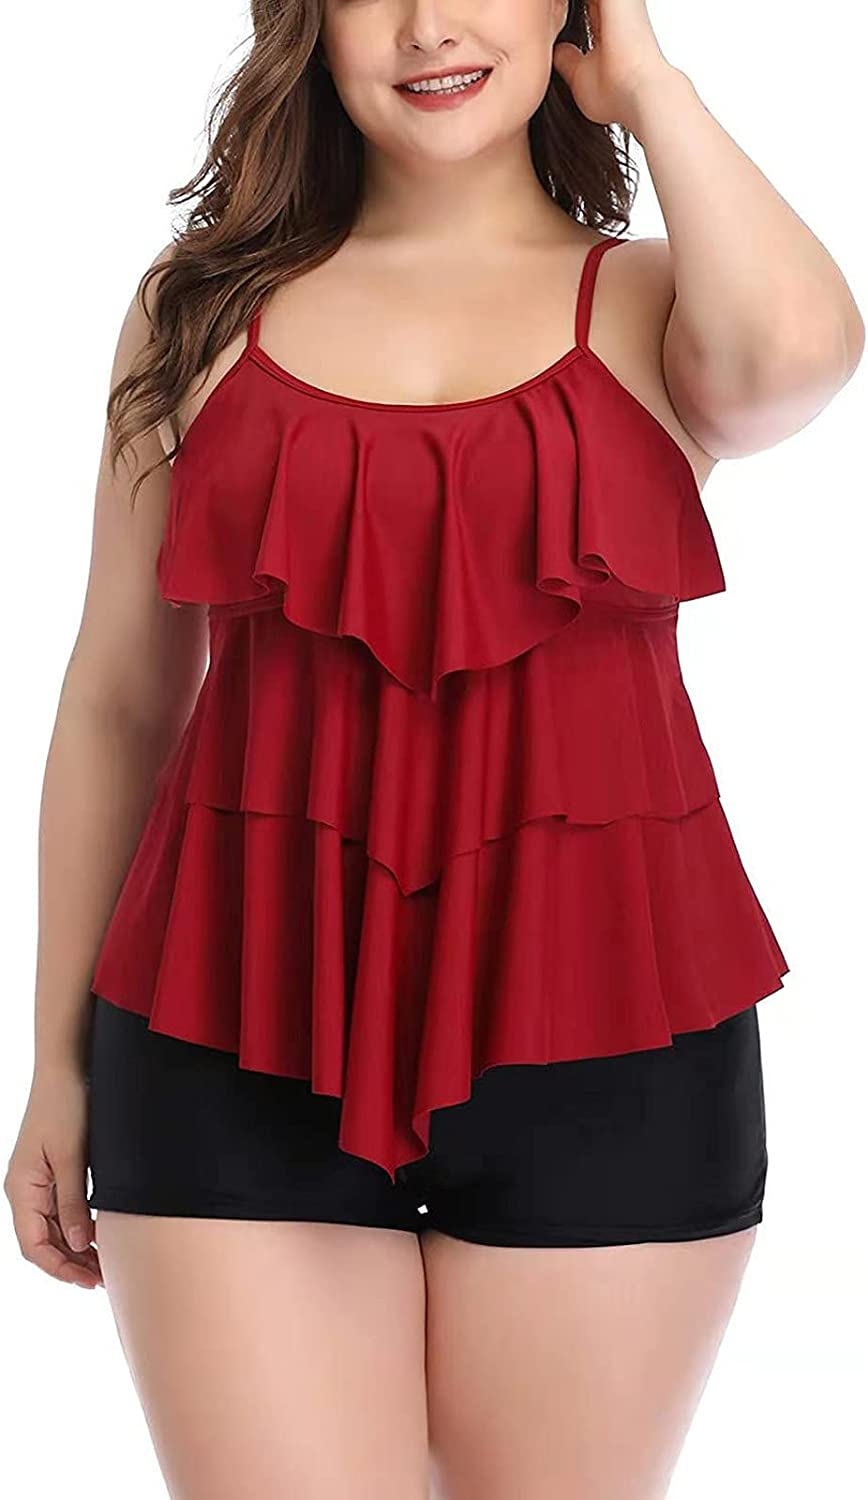 Layered Ruffle Tankini Swimsuits for Women Print Tummy Floral Co Virginia Beach Mall Industry No. 1